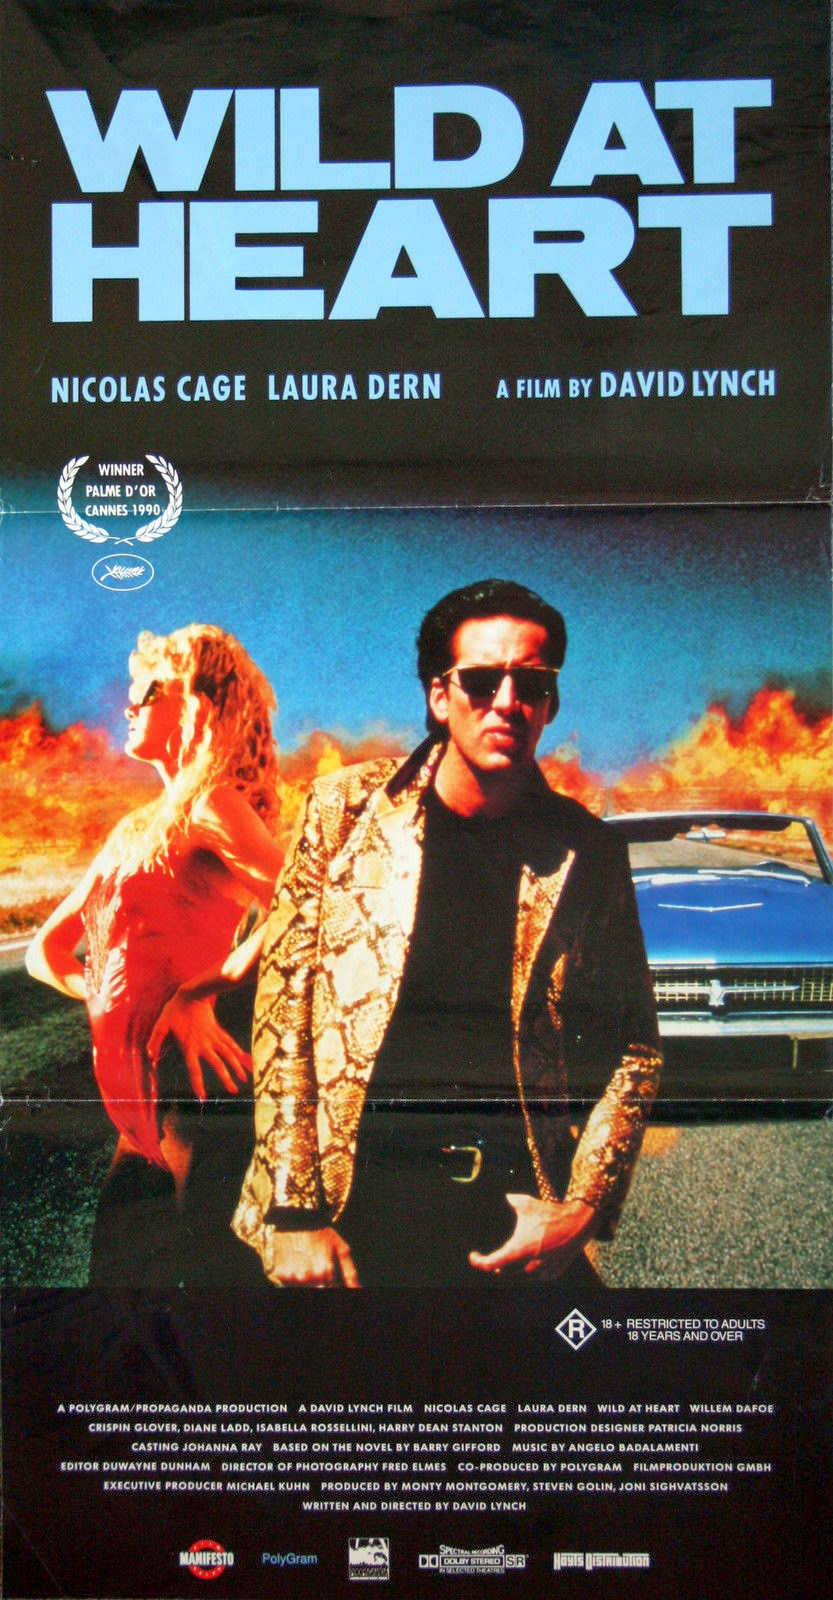 wild at heart dir david lynch 1990 discreet charms obscure objects. Black Bedroom Furniture Sets. Home Design Ideas